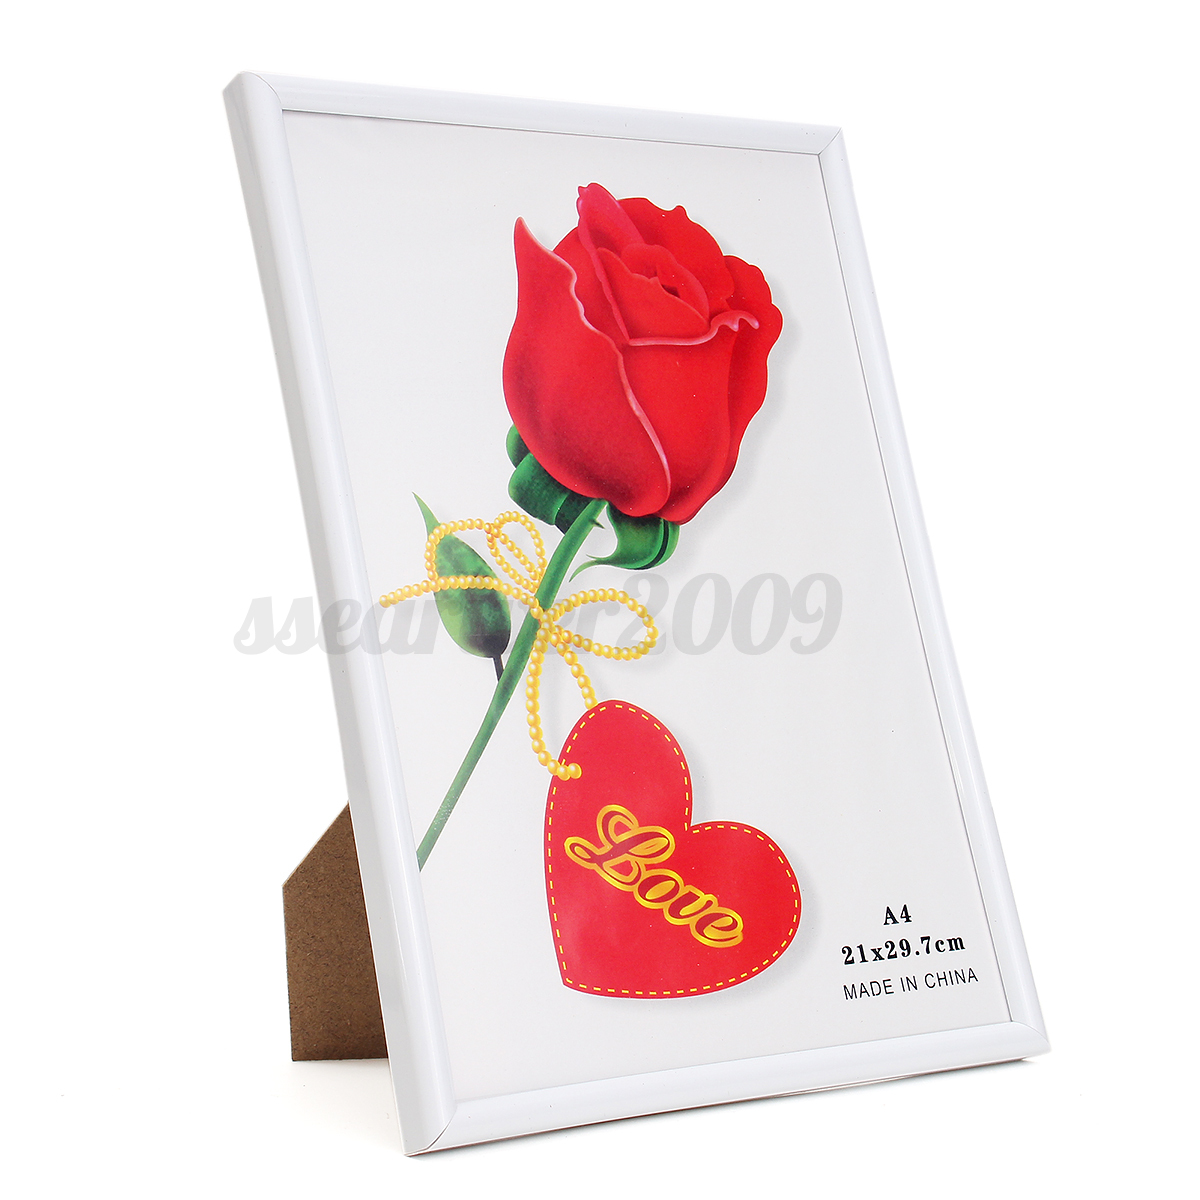 10 39 39 12 39 39 16 39 39 picture photo frame home room office desk for Room decoration gifts